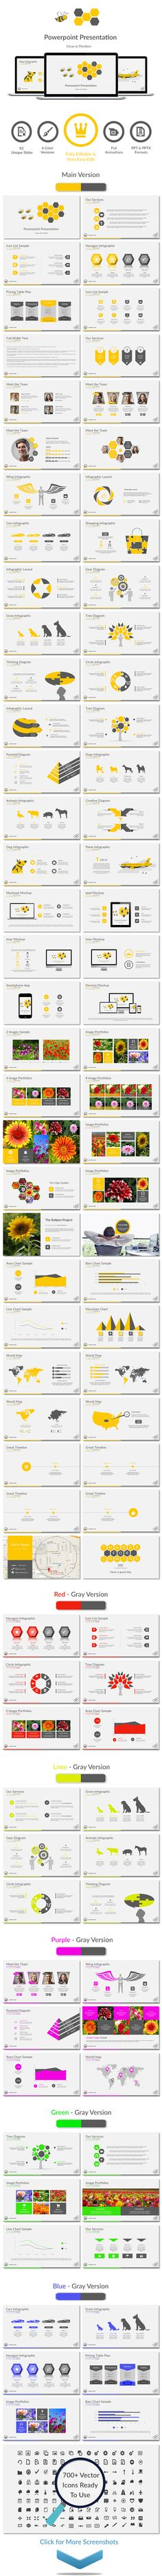 Bee — Powerpoint PPT #1366x768 #social media • Download ➝ https://graphicriver.net/item/bee-powerpoint/19633634?ref=pxcr